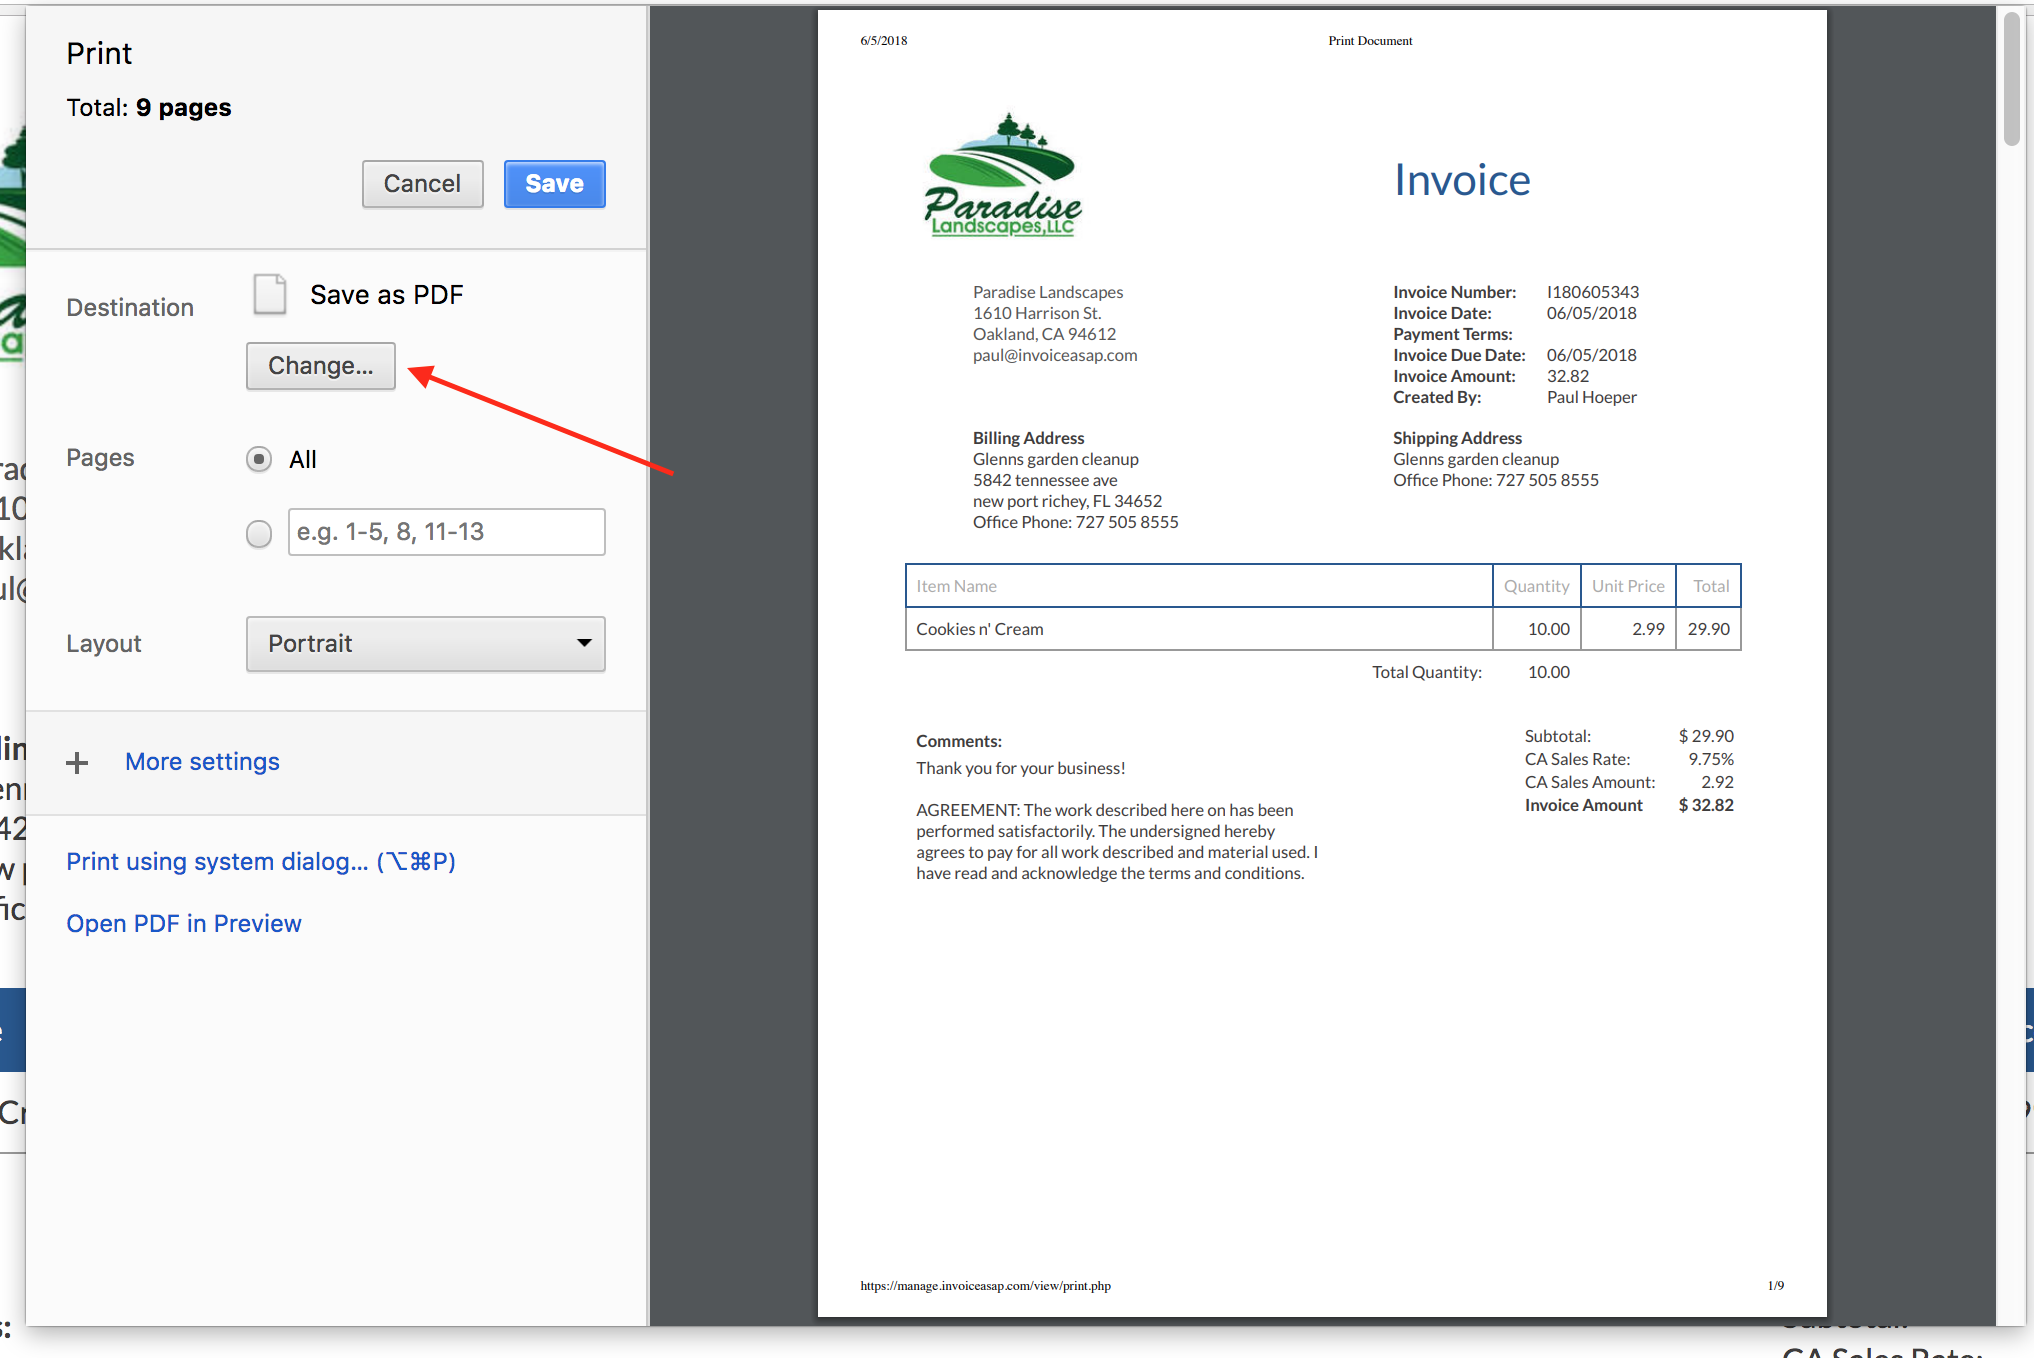 Web Dashboard How Do I Create A PDF Of The Invoice InvoiceASAP - Invoice asap android